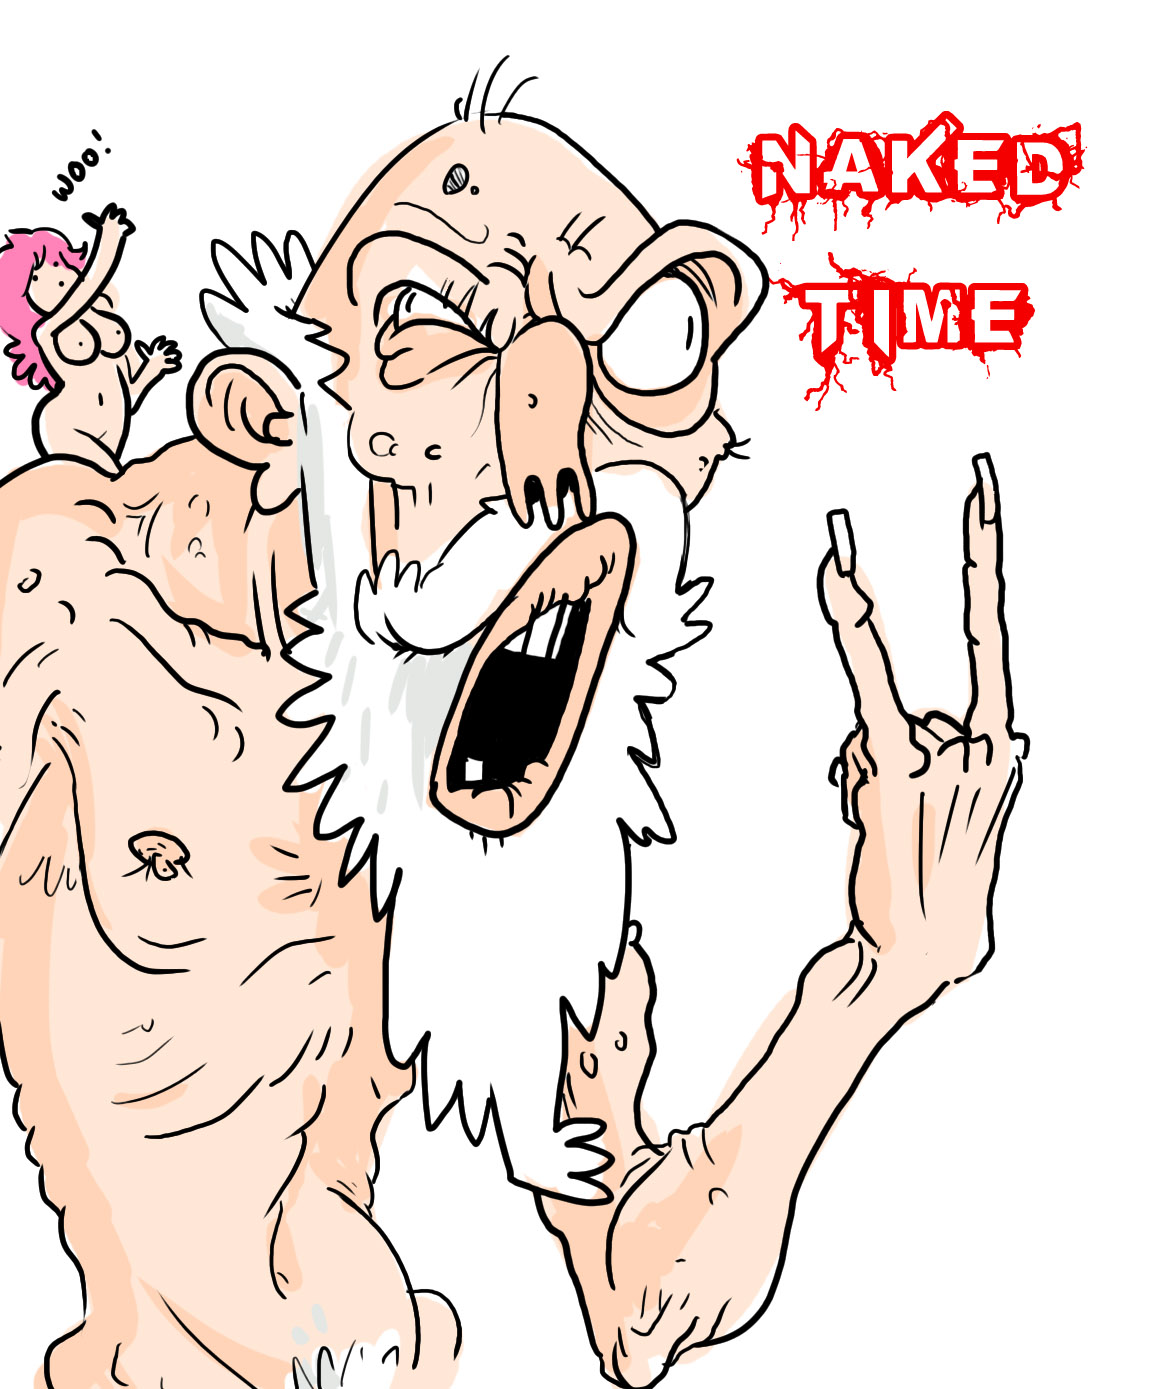 naked time woo!